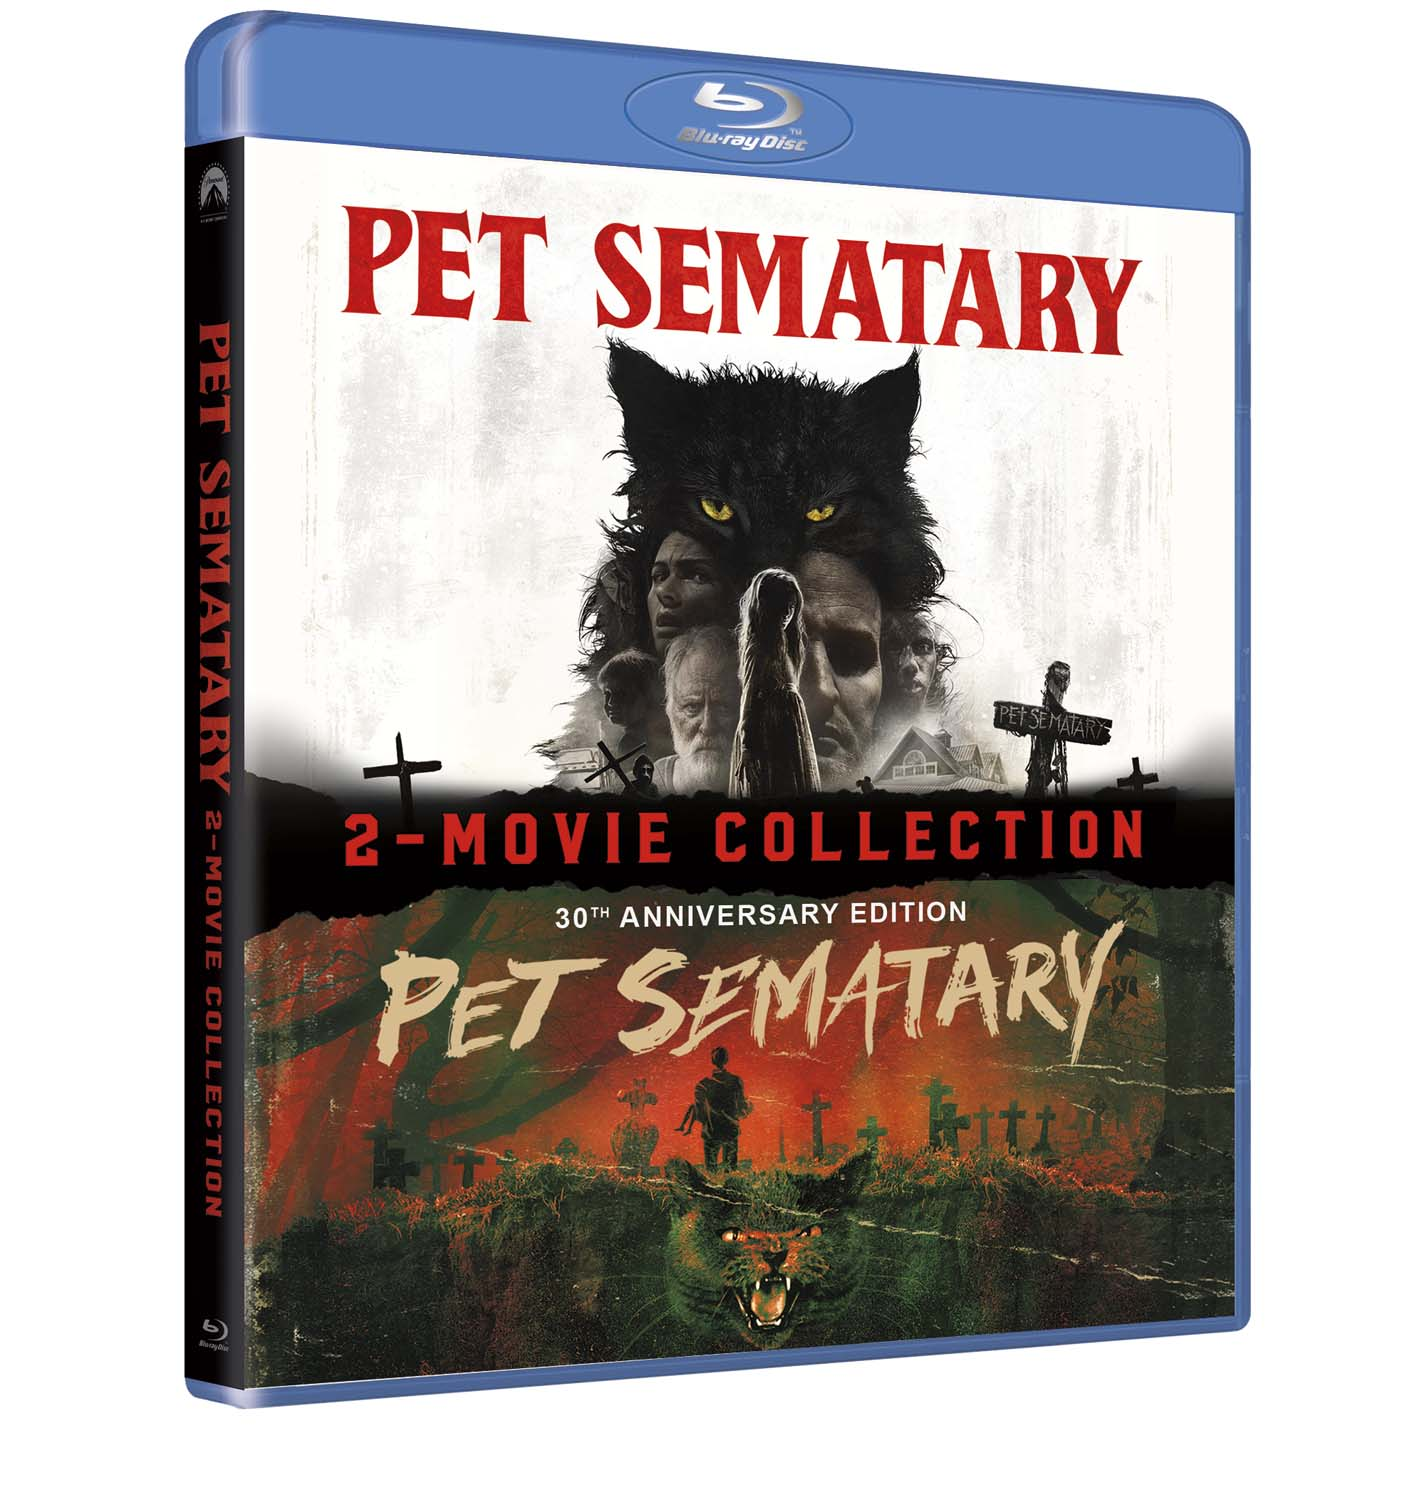 COF.PET SEMATARY COLLECTION (2 BLU-RAY)